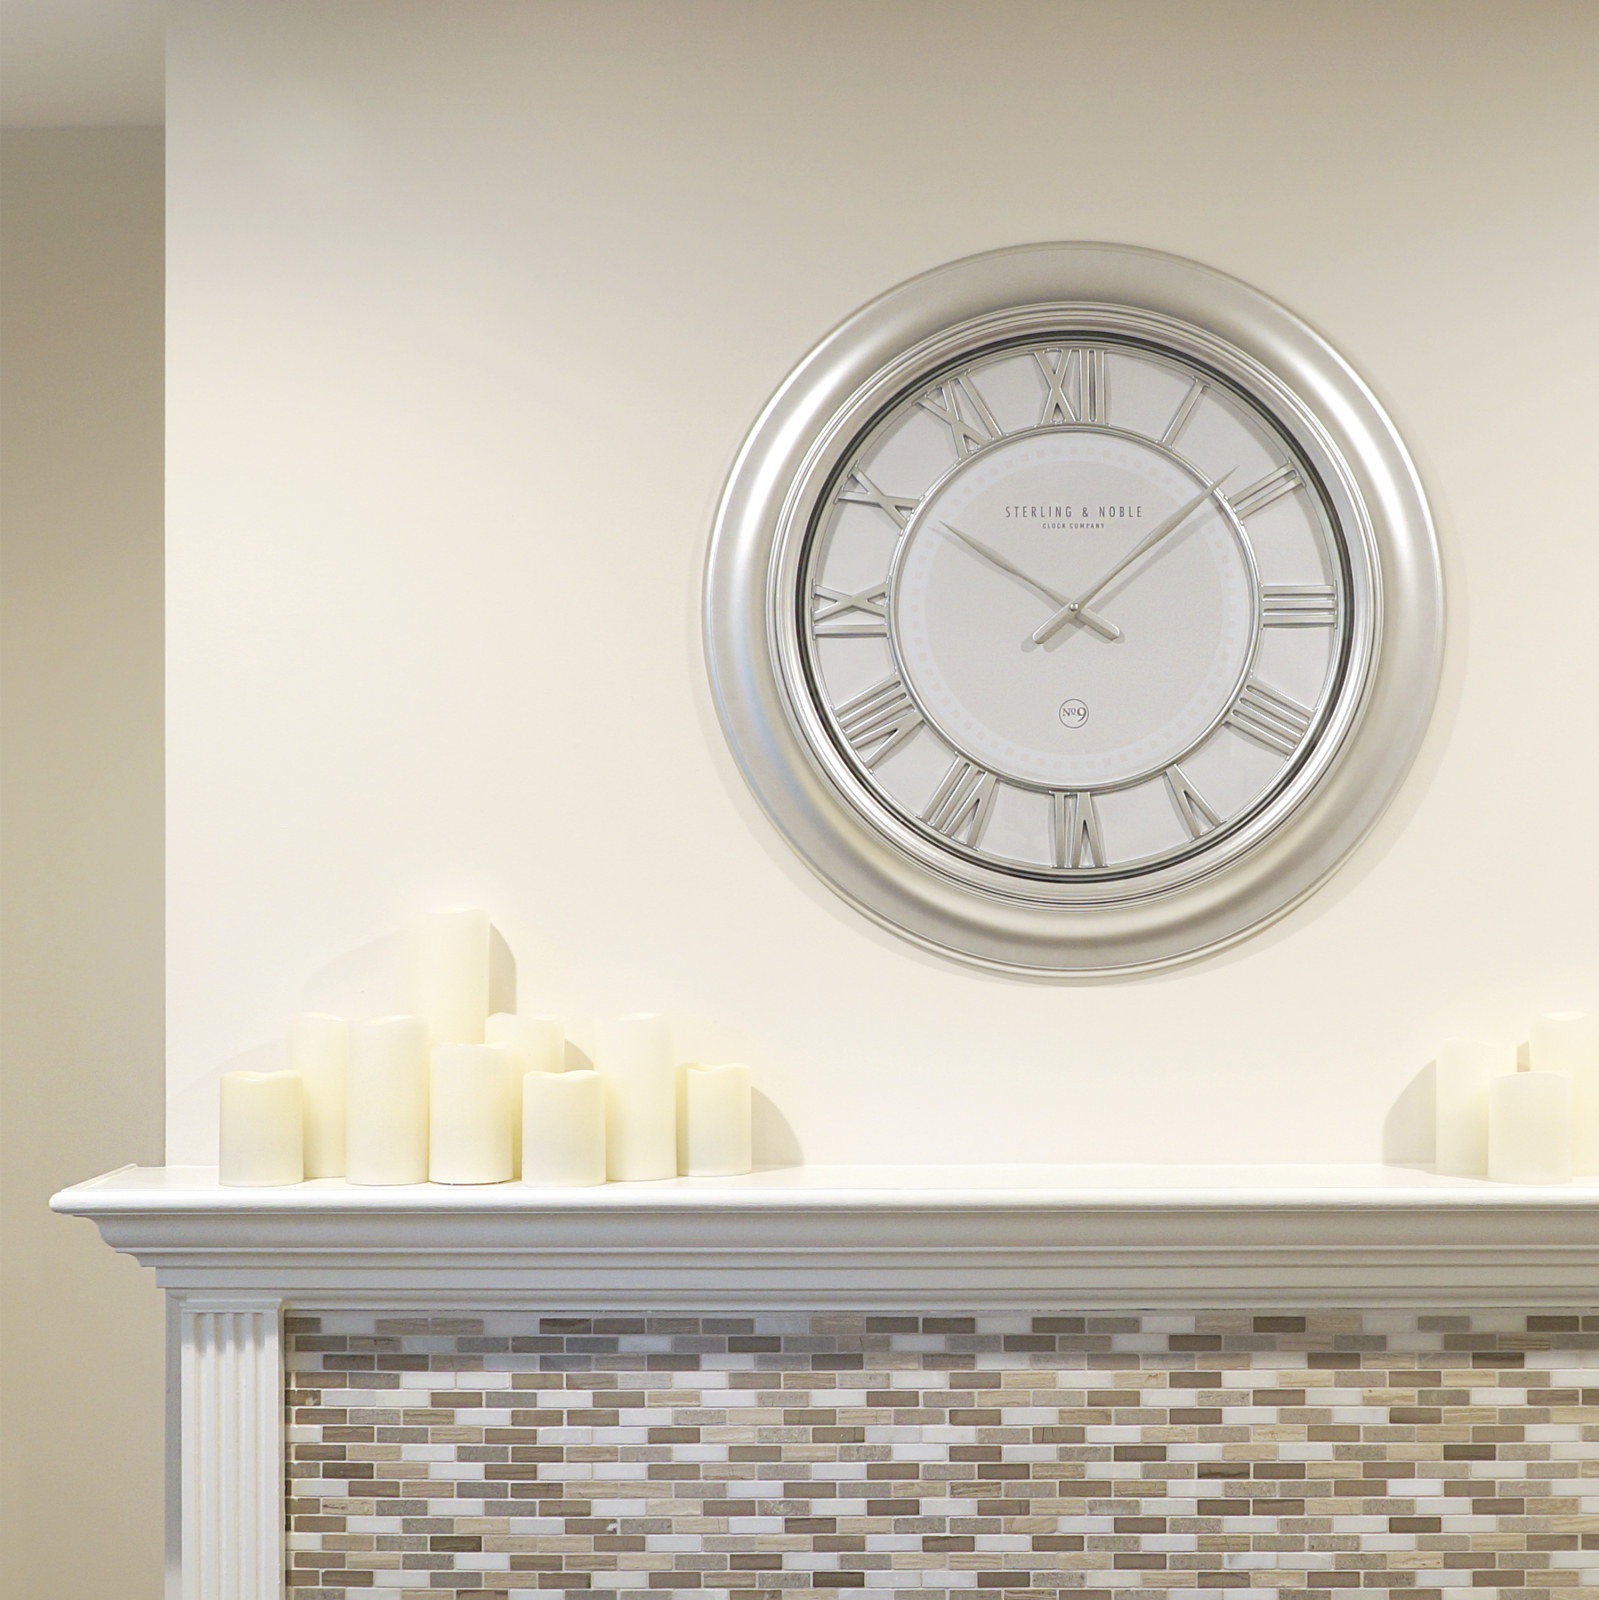 A white and silver clock hung up on a wall